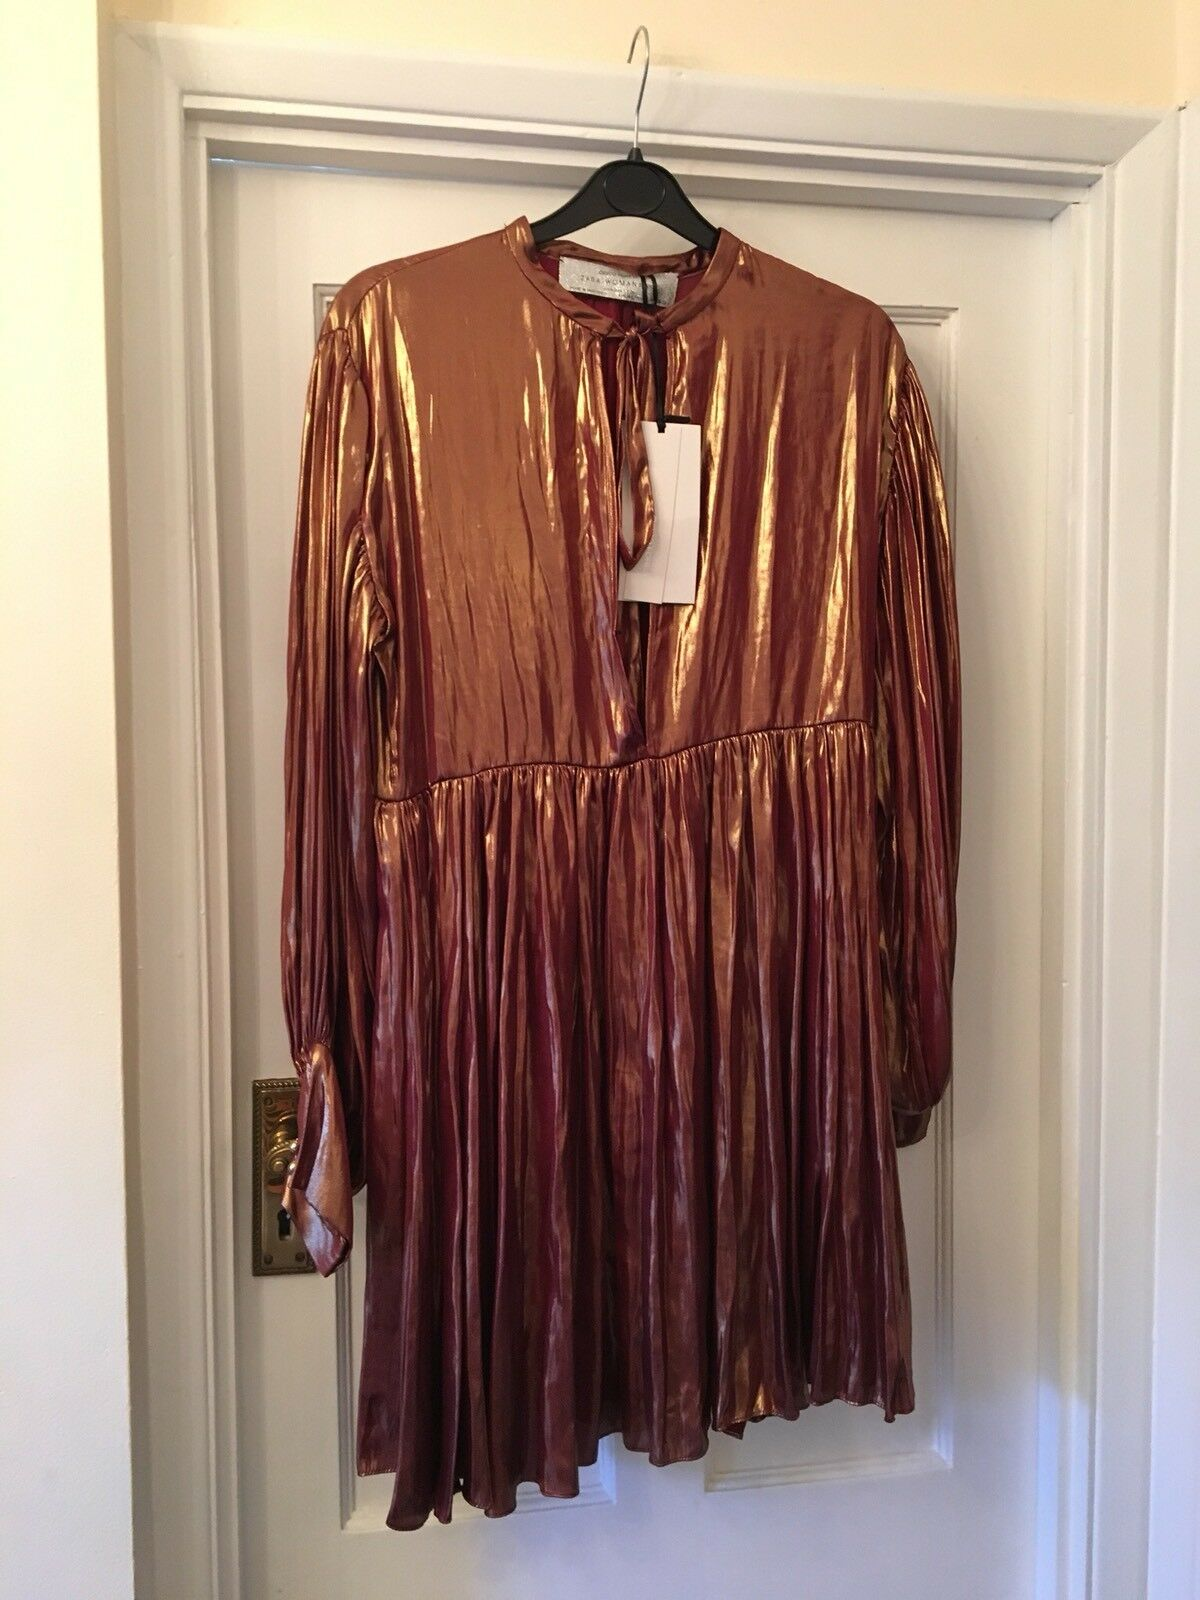 New Zara Woman Studio Gold Shiny Shirt Blouse Summer Festival Party Dress,M L